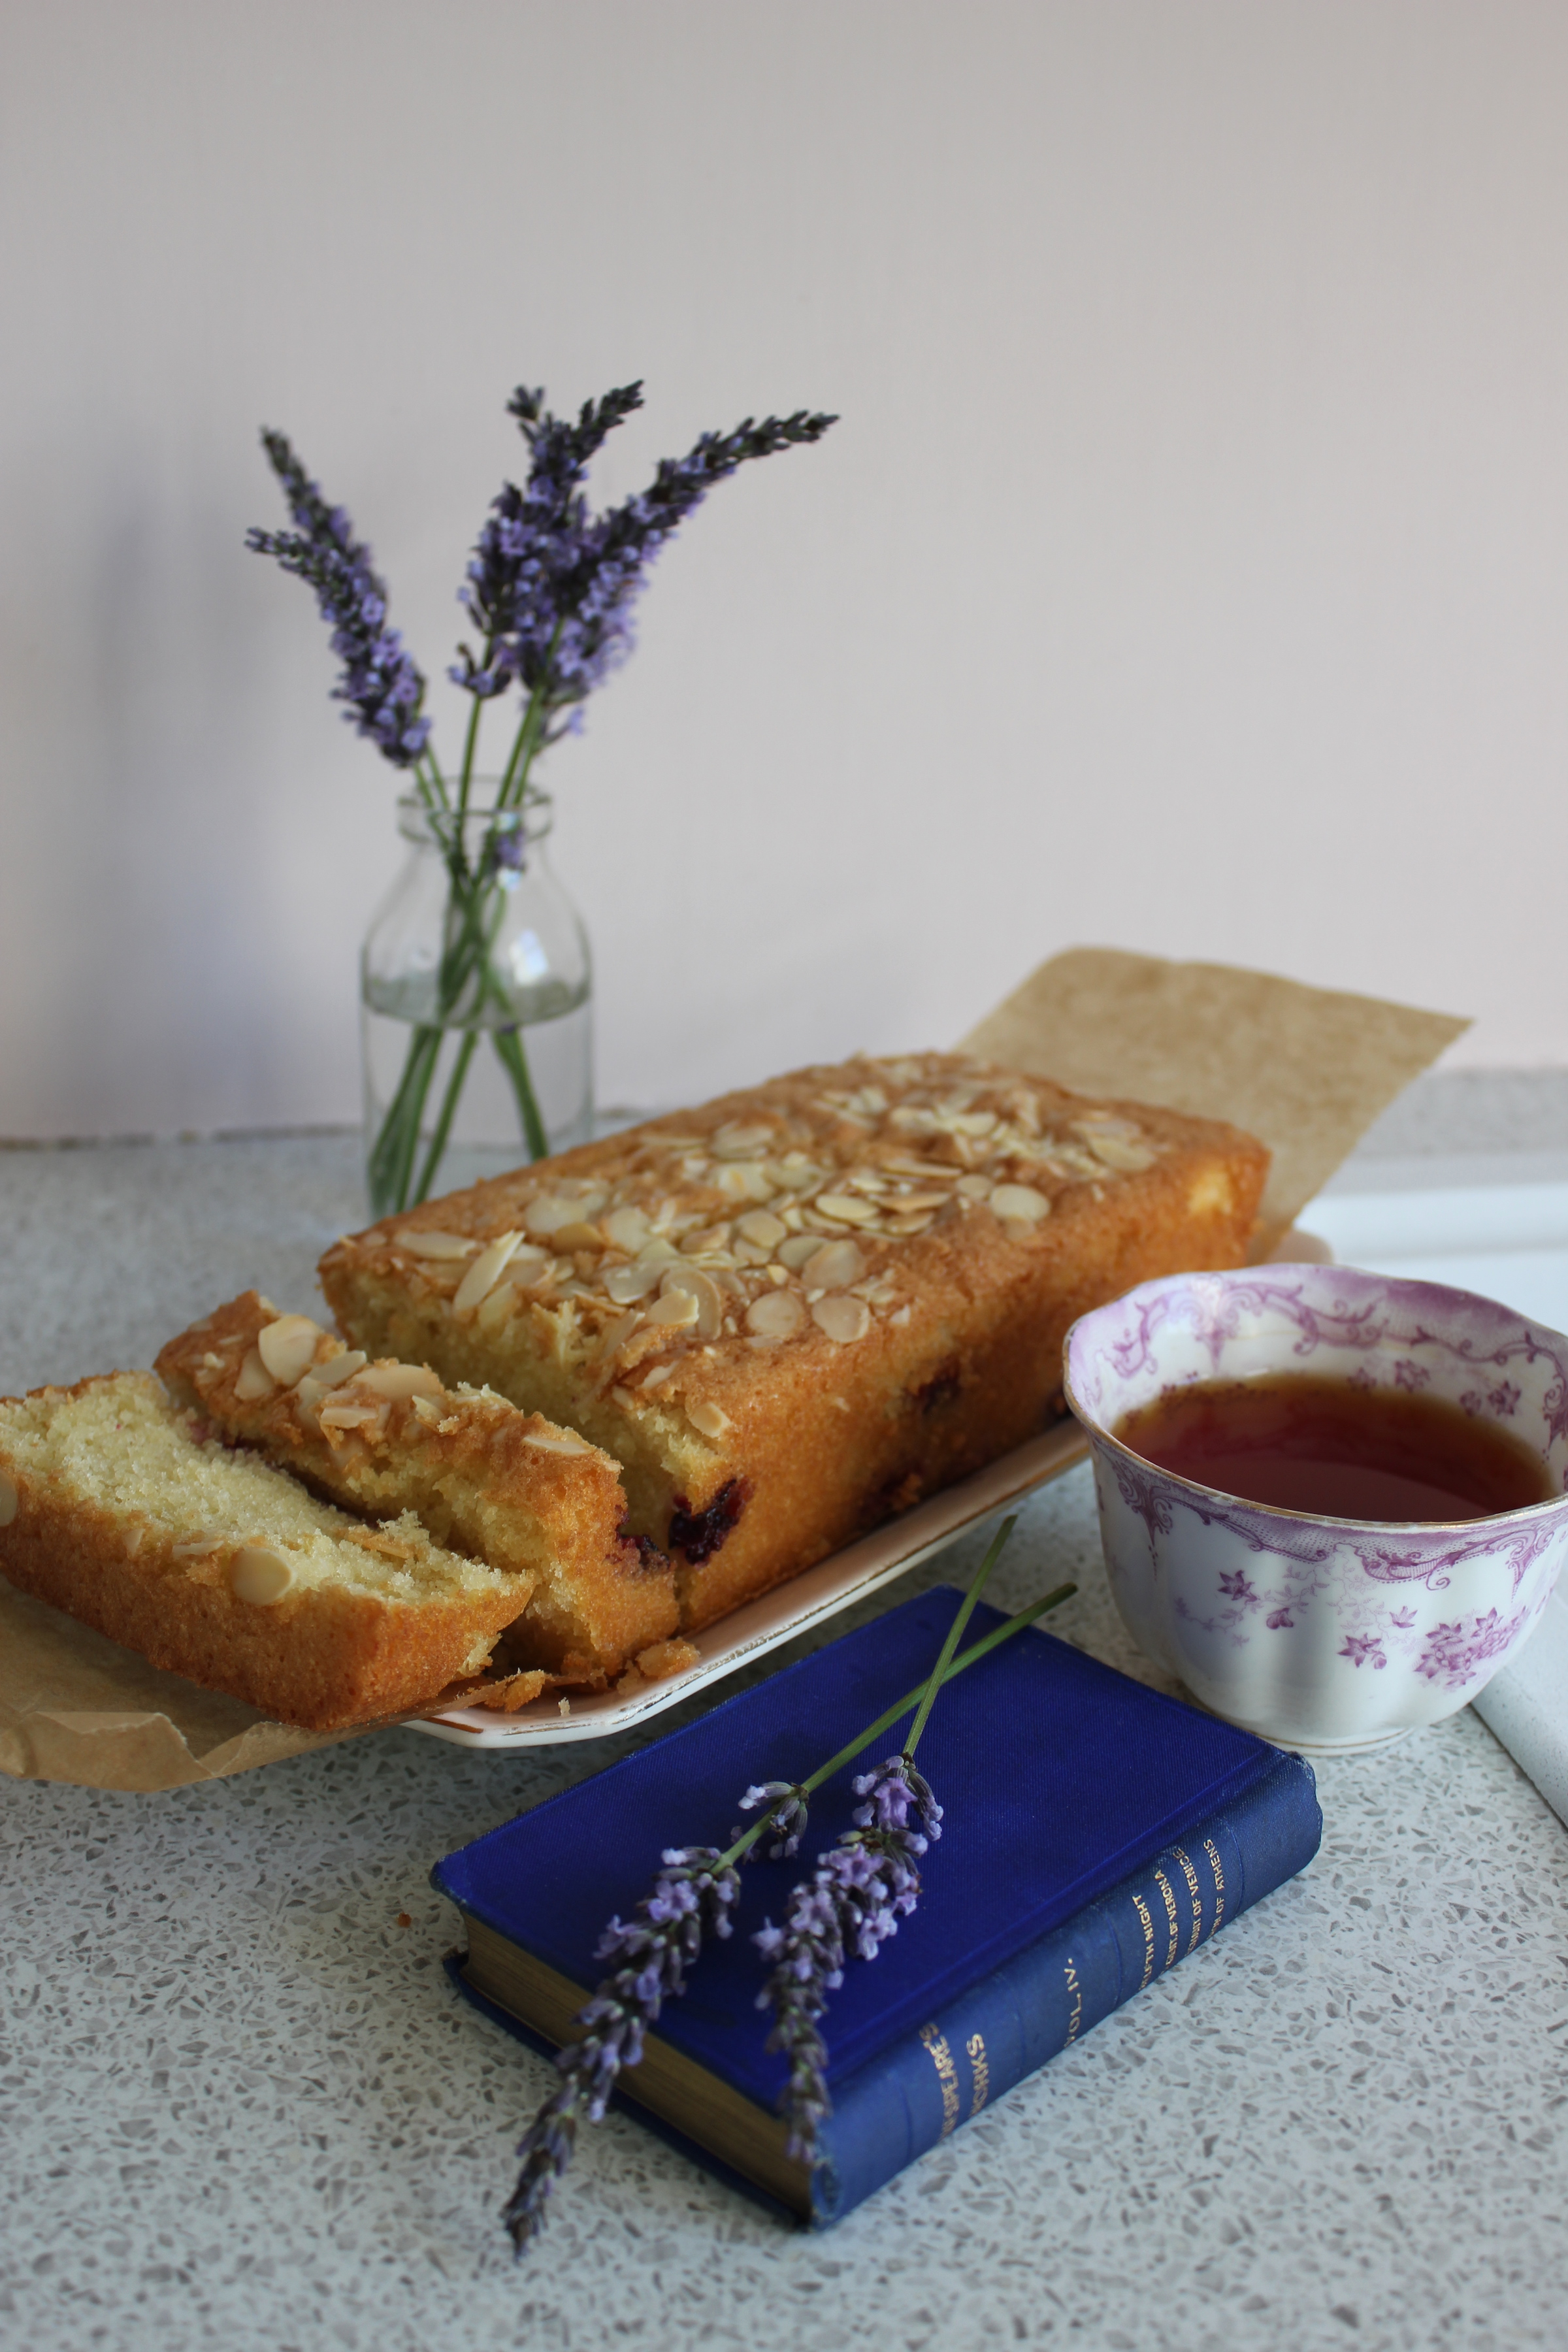 Blackcurrant and almond loaf